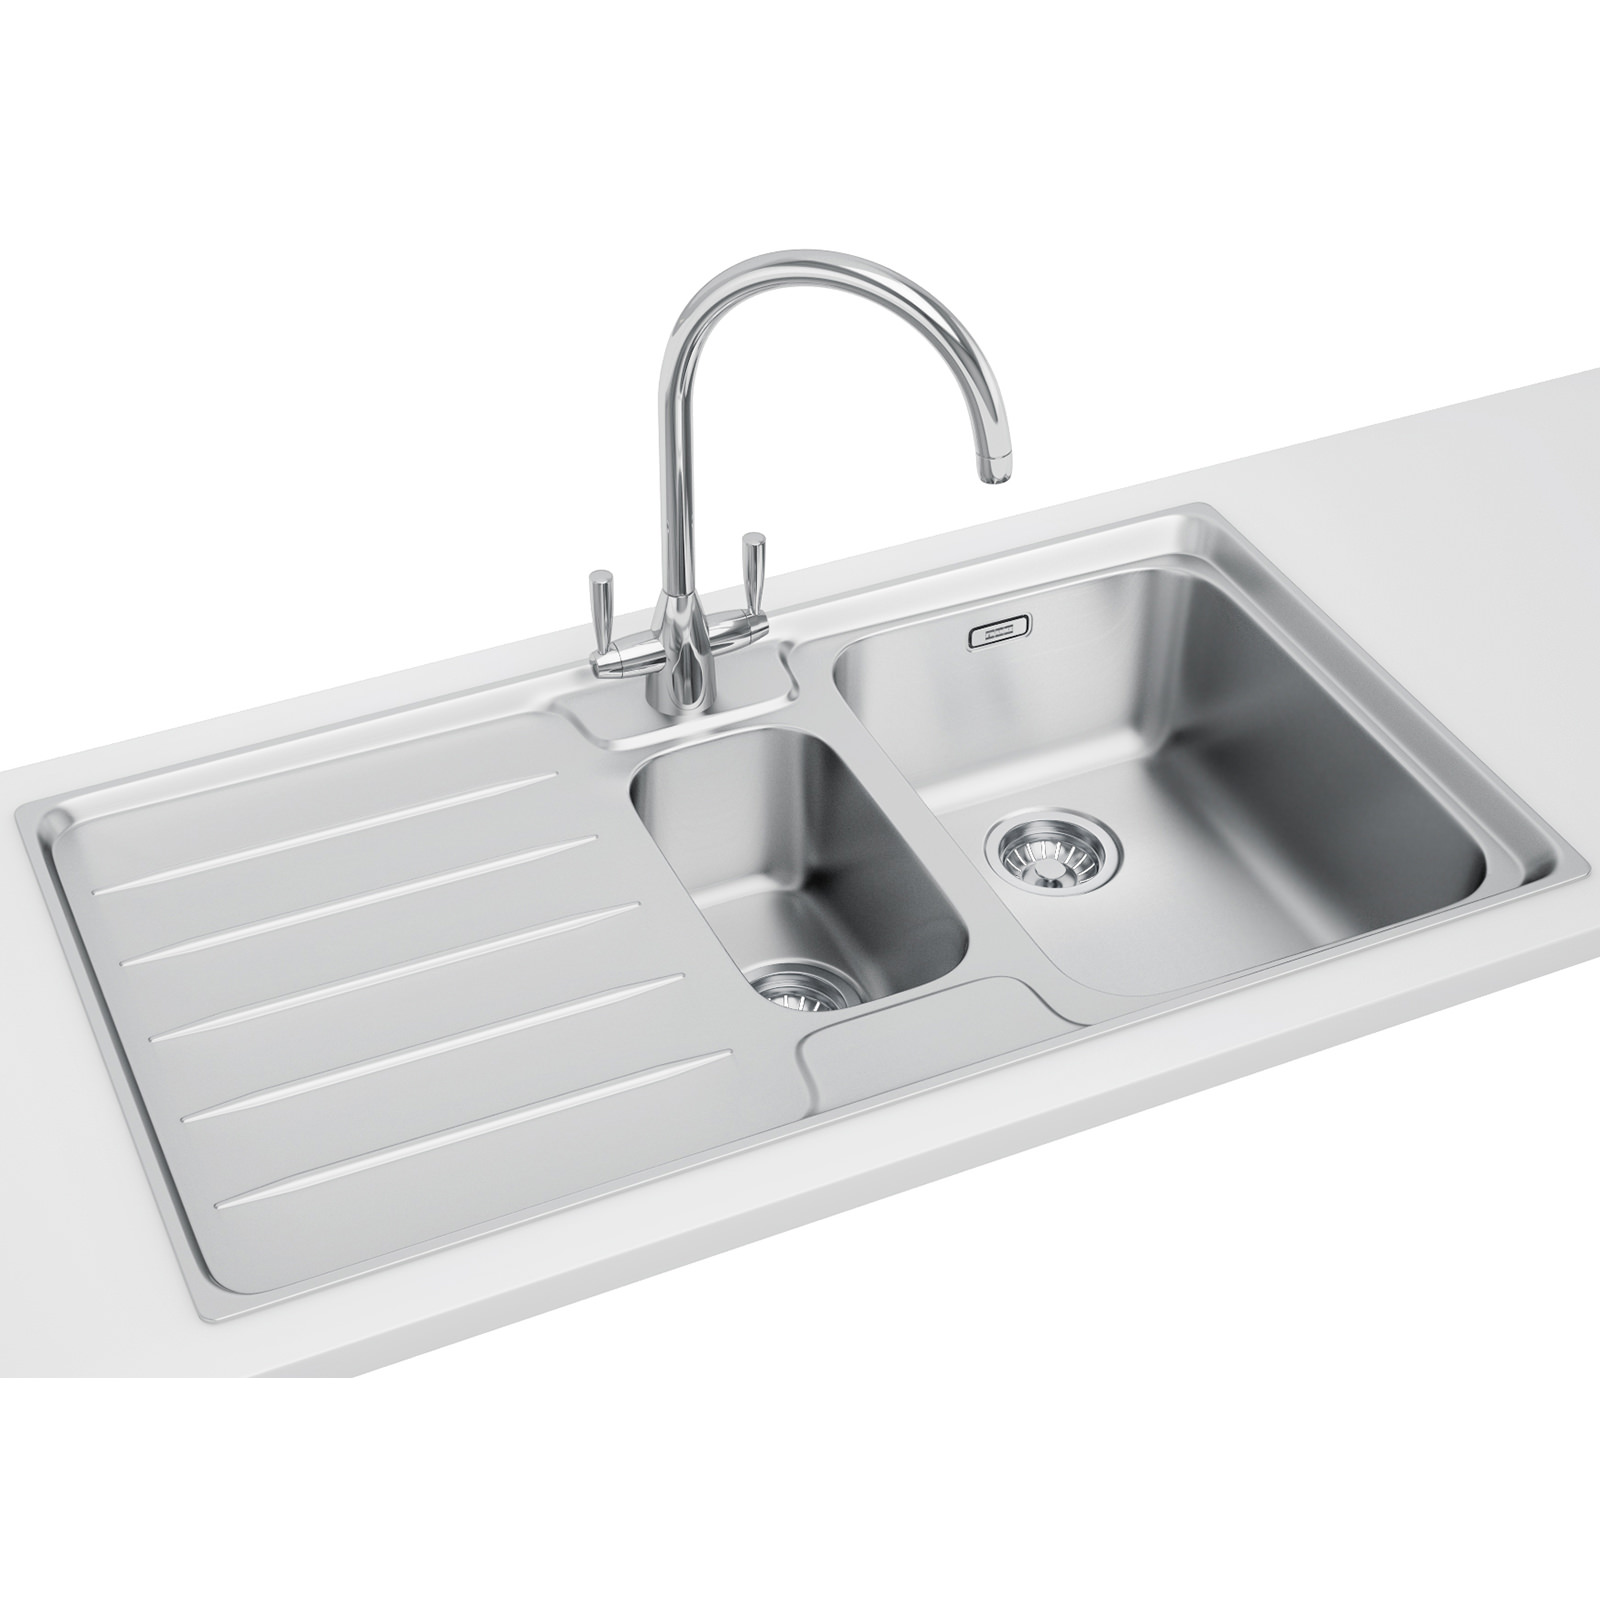 Franke Laser LSX 651 1.5 Bowl Stainless Steel Kitchen Inset Sink ...